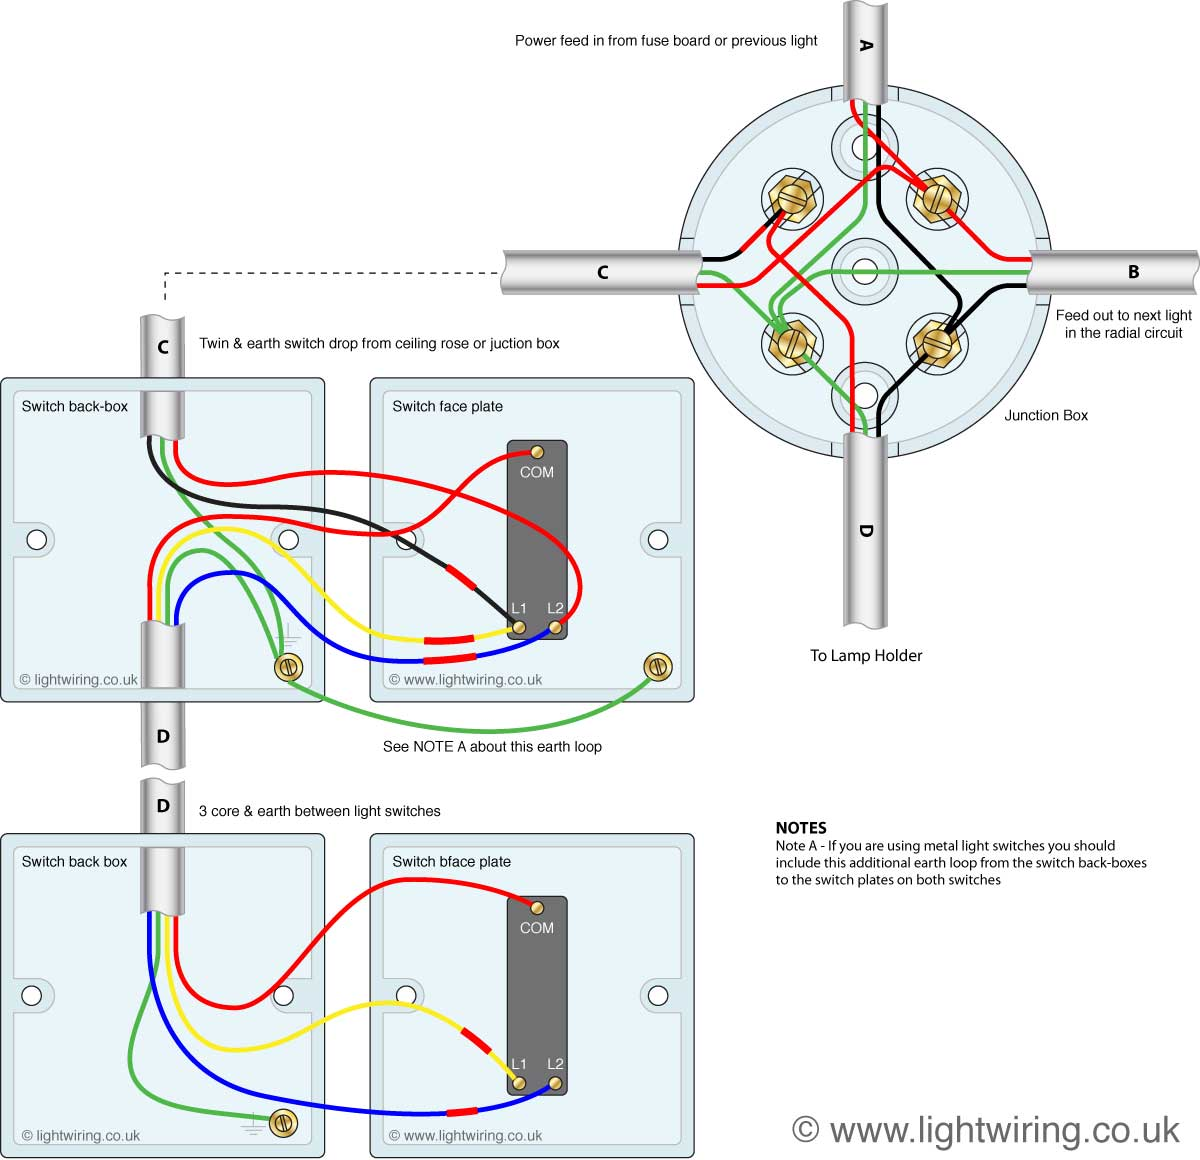 4 Way Switch Wiring Diagram Variations | Wiring Diagram  Way Switch Wiring Diagram Variations Power To on 4 way switch wire, 4 way switch ladder diagram, 4 way switch schematic, easy 4-way switch diagram, 6-way light switch diagram, 4 way switch circuit, 4 way dimmer switch diagram, 4 way switch timer, 4 way switch building diagram, 4 way wall switch diagram, 4 way light diagram, 5-way light switch diagram, 4 way switch operation, 4 way switch installation, 4-way circuit diagram, 4 way switch troubleshooting, 4 way lighting diagram, 3-way switch diagram,